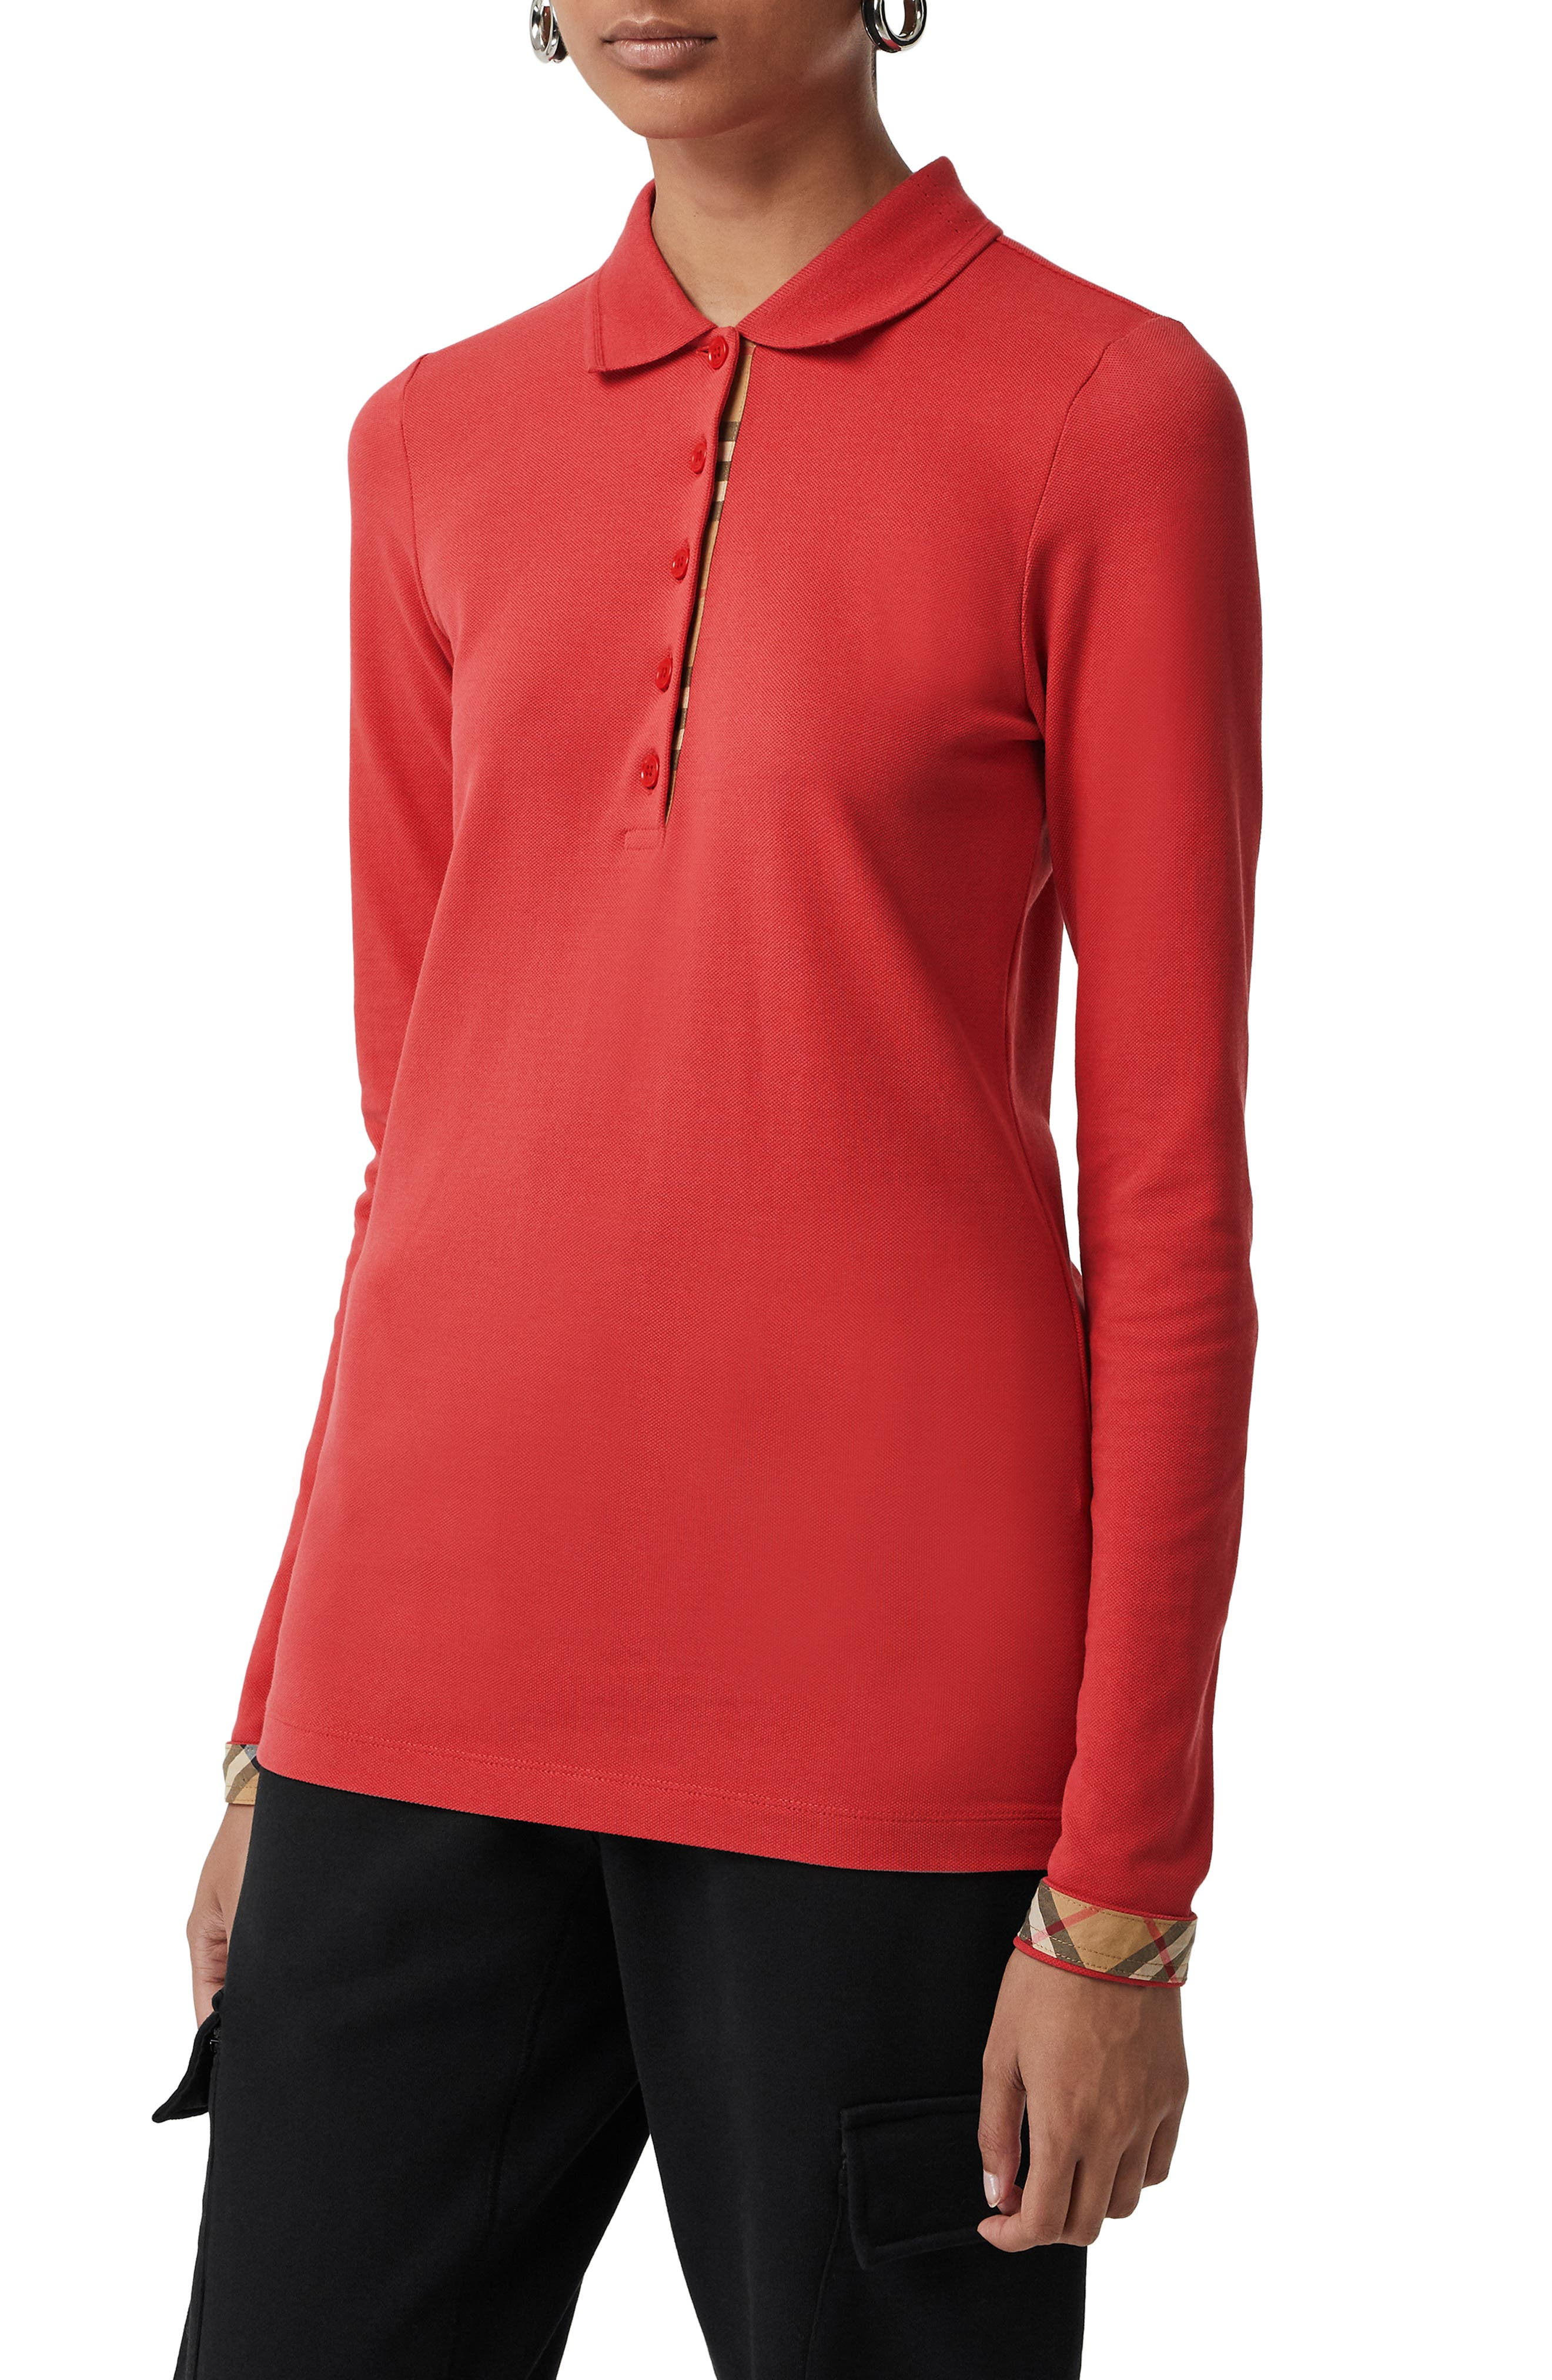 BURBERRY Zulia Polo Shirt, Main, color, BRIGHT RED